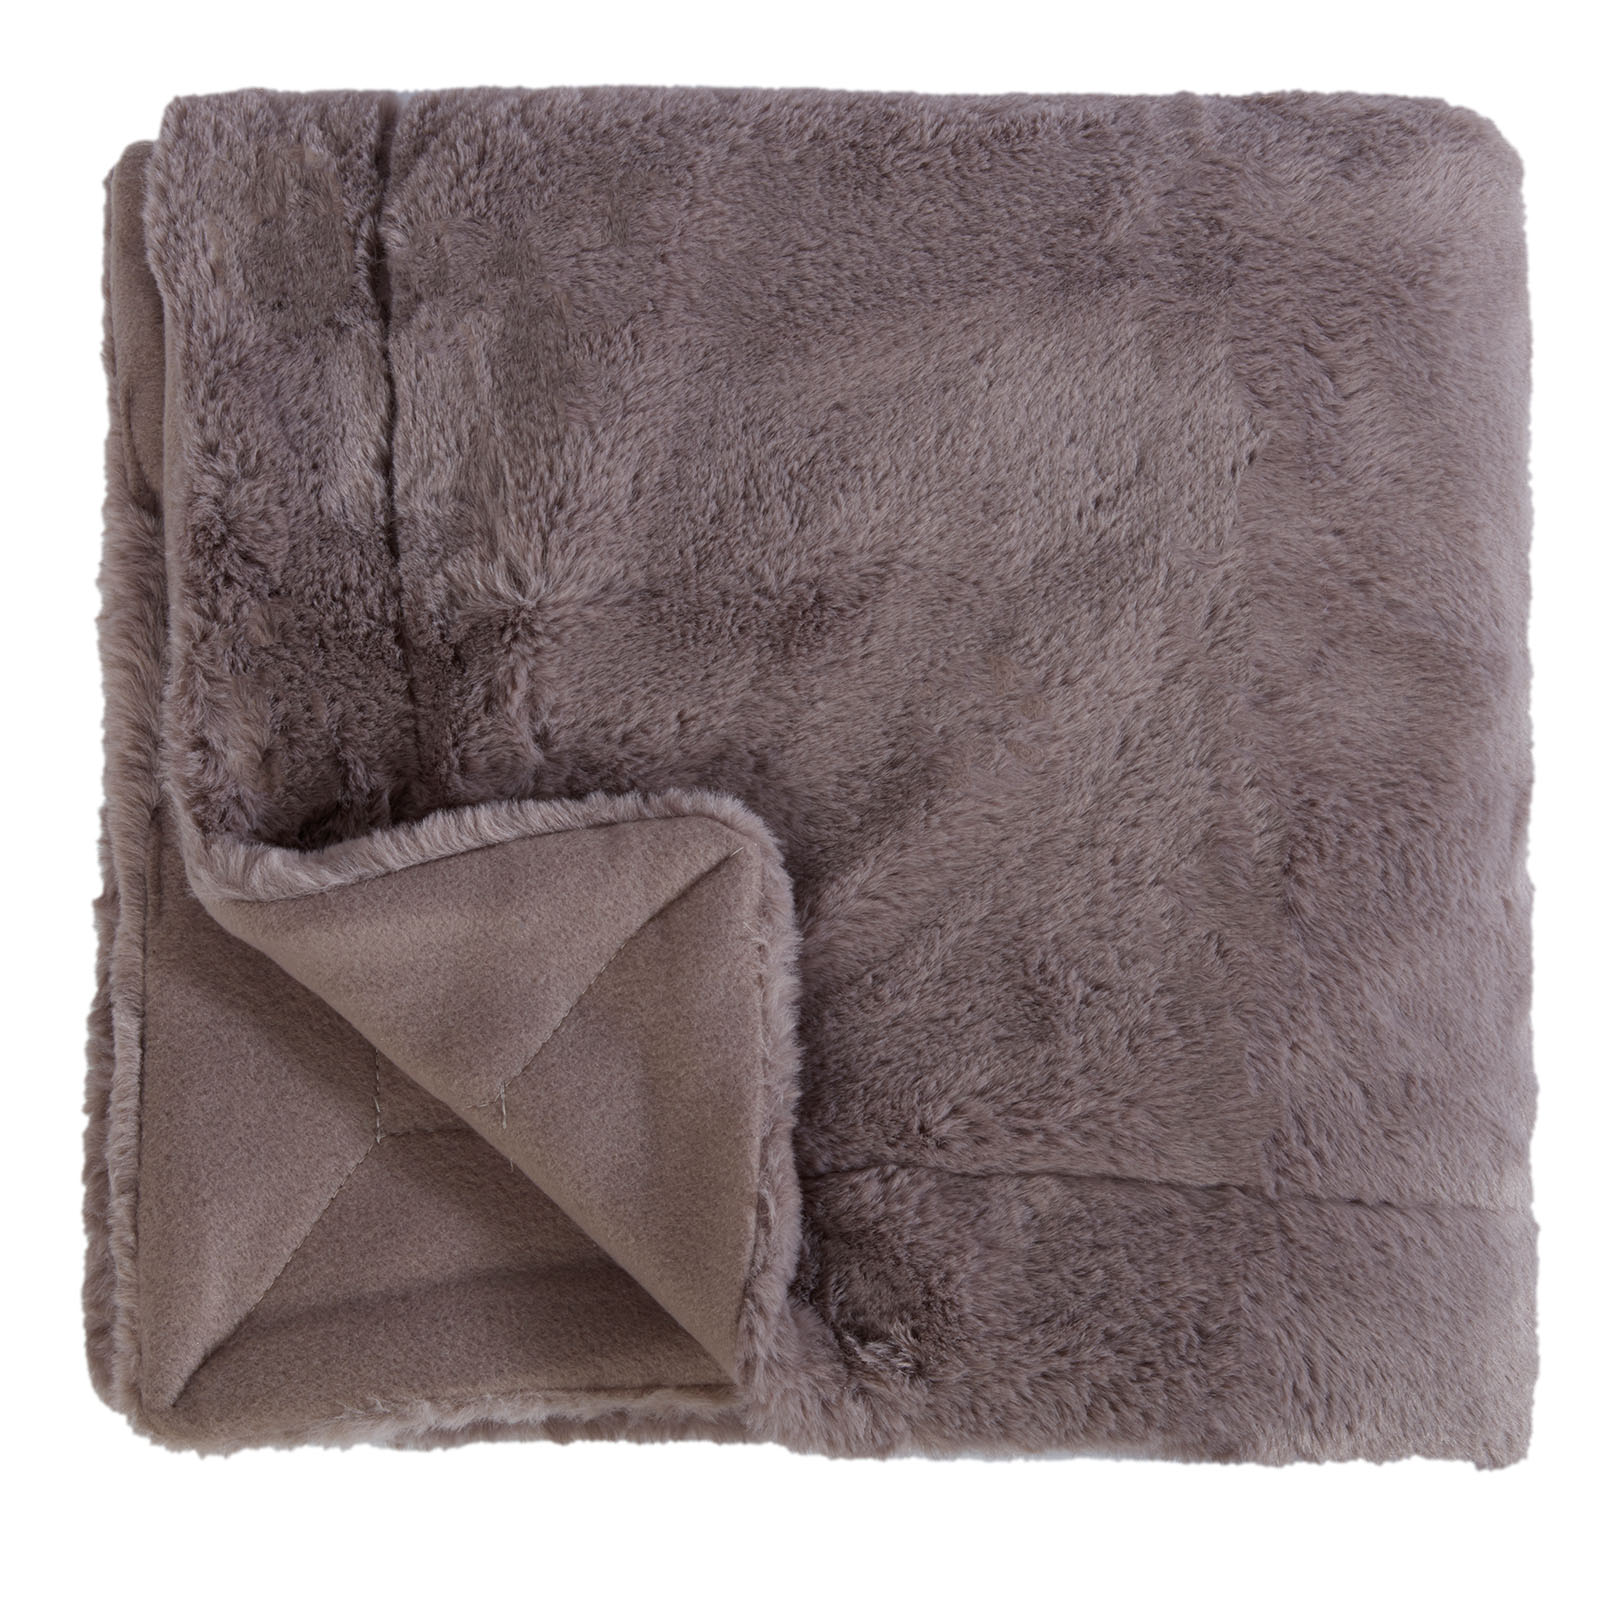 Dreamscene-Luxury-Large-Waffle-Honeycomb-Mink-Warm-Throw-Over-Bed-Soft-Blanket thumbnail 28